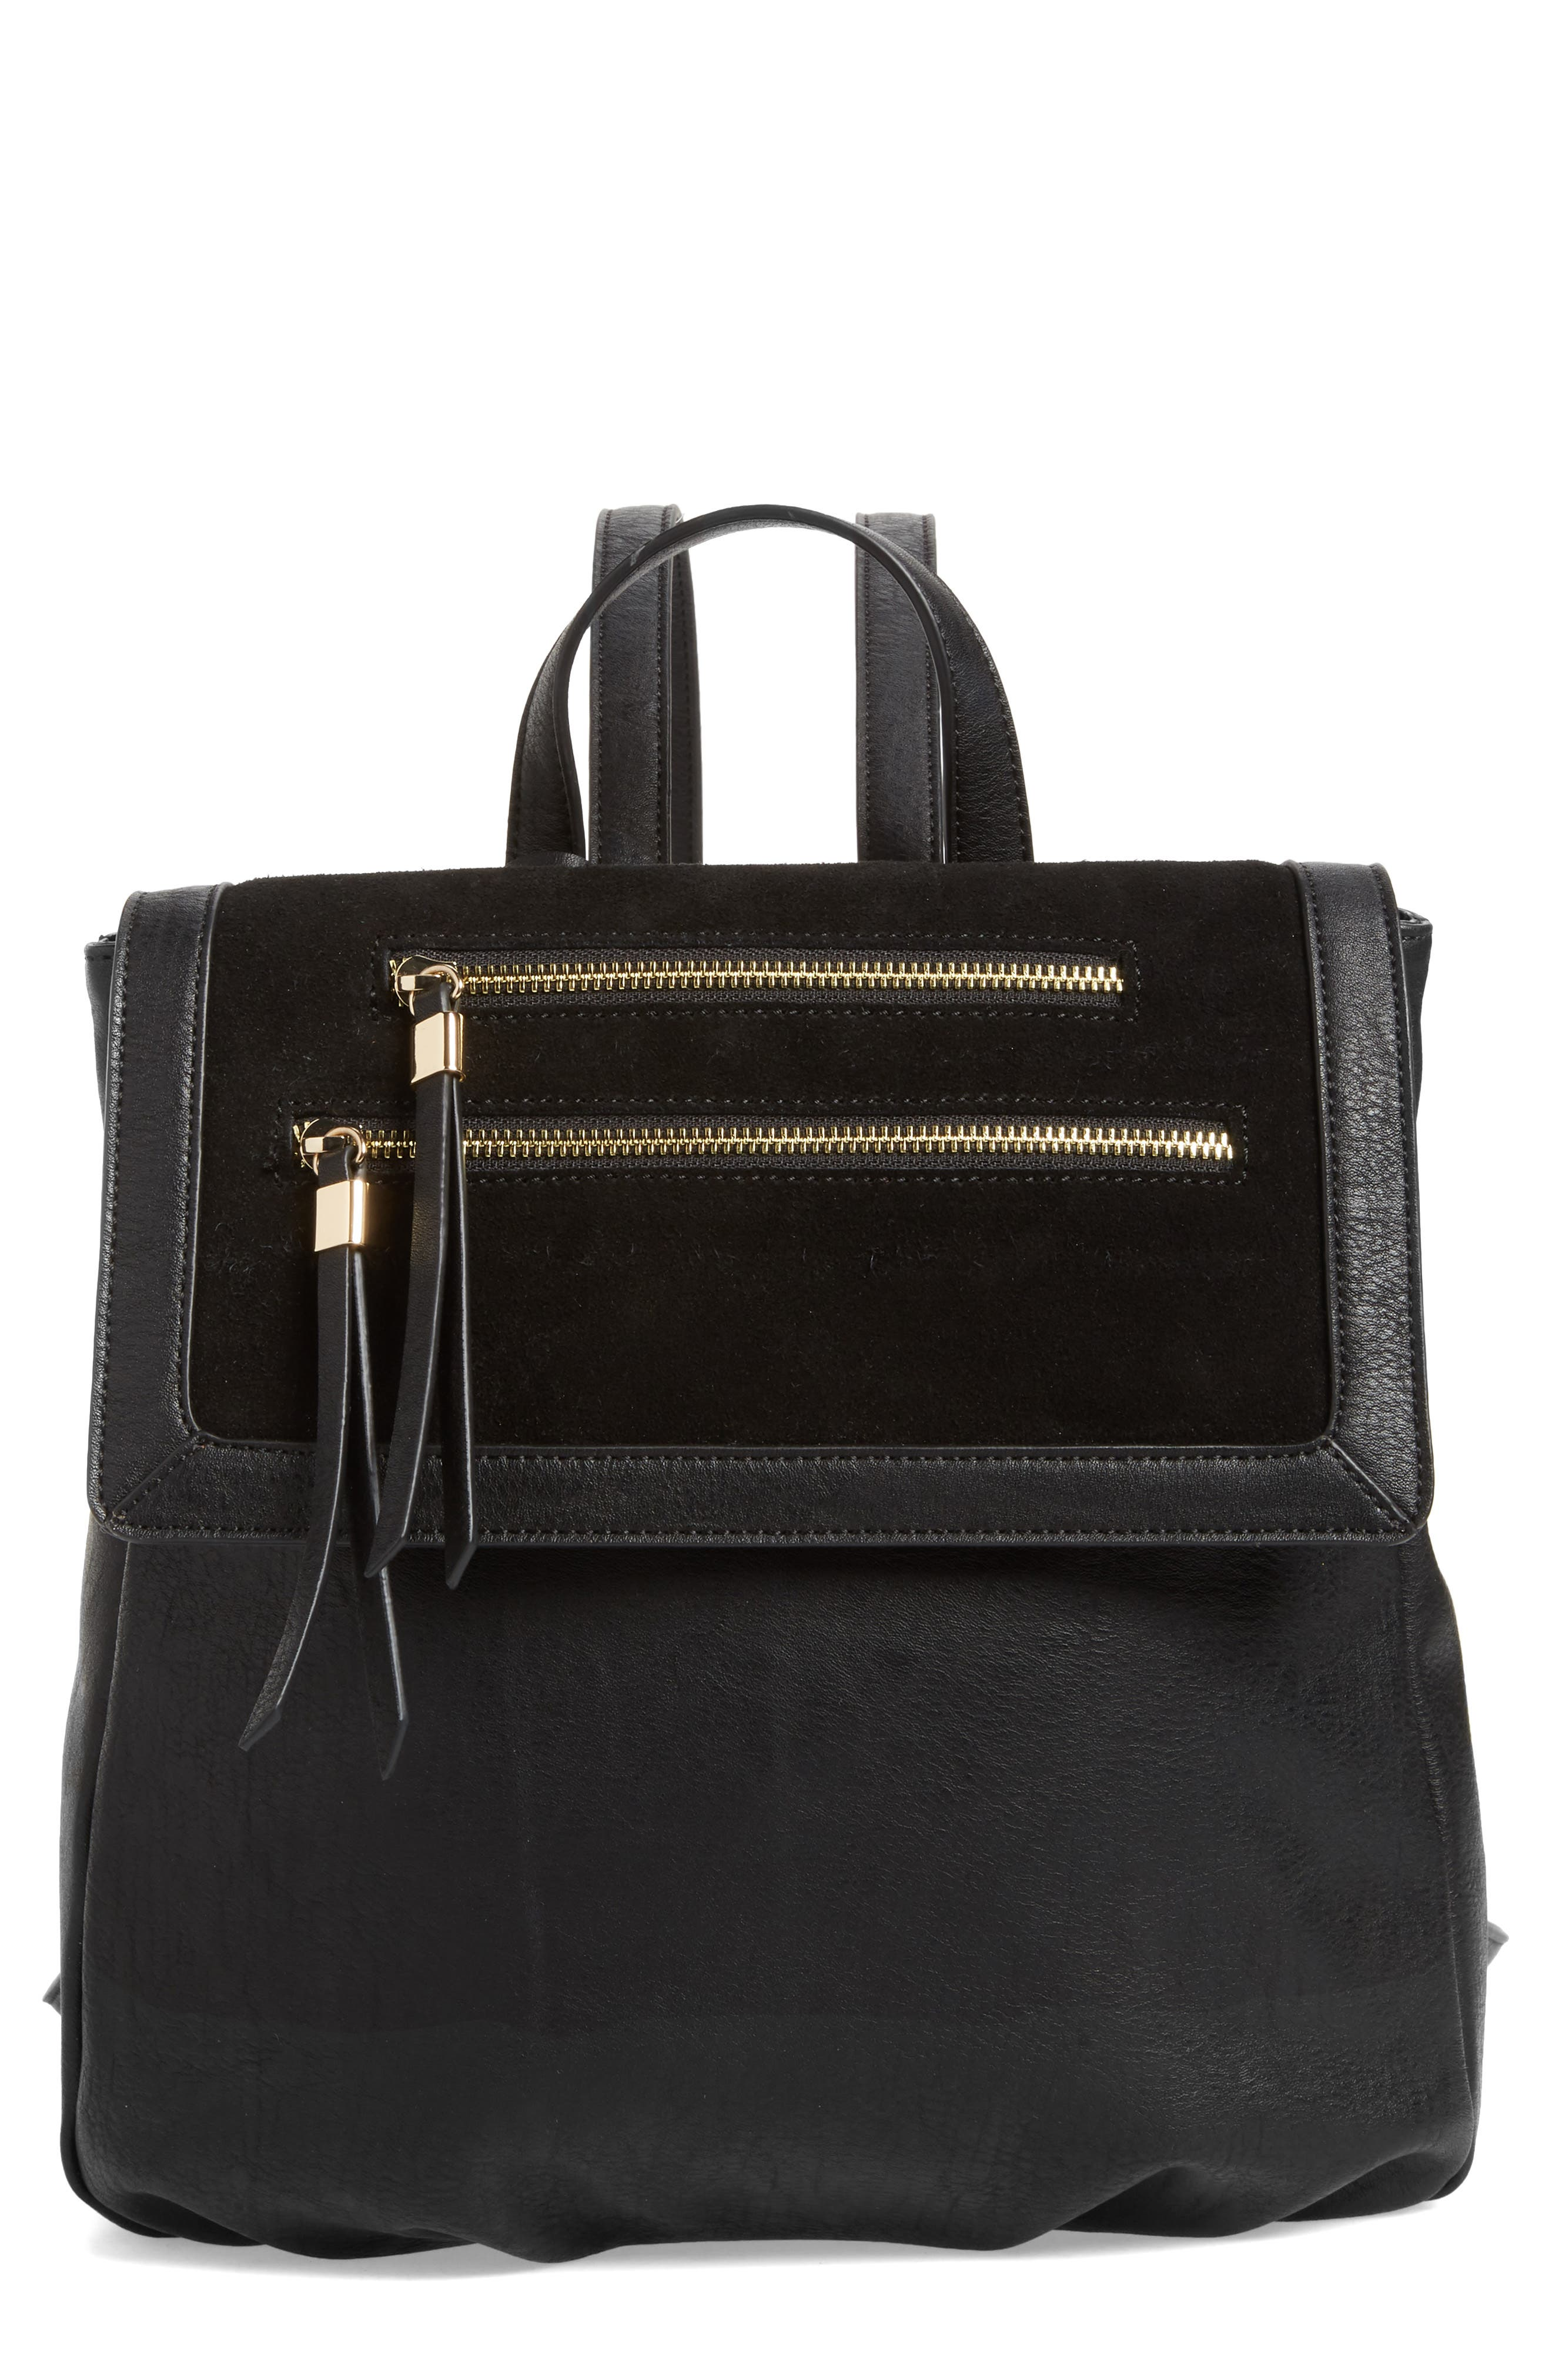 SOLE SOCIETY Chele Backpack, Main, color, 001